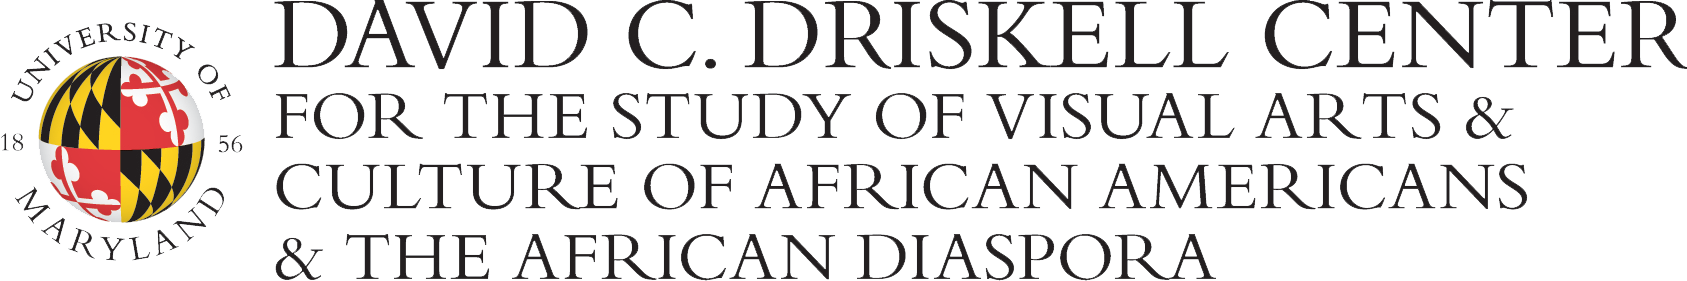 UMD David C. Driskell Center for the Visual Arts and Culture of African Americans and the African Diaspora Logo